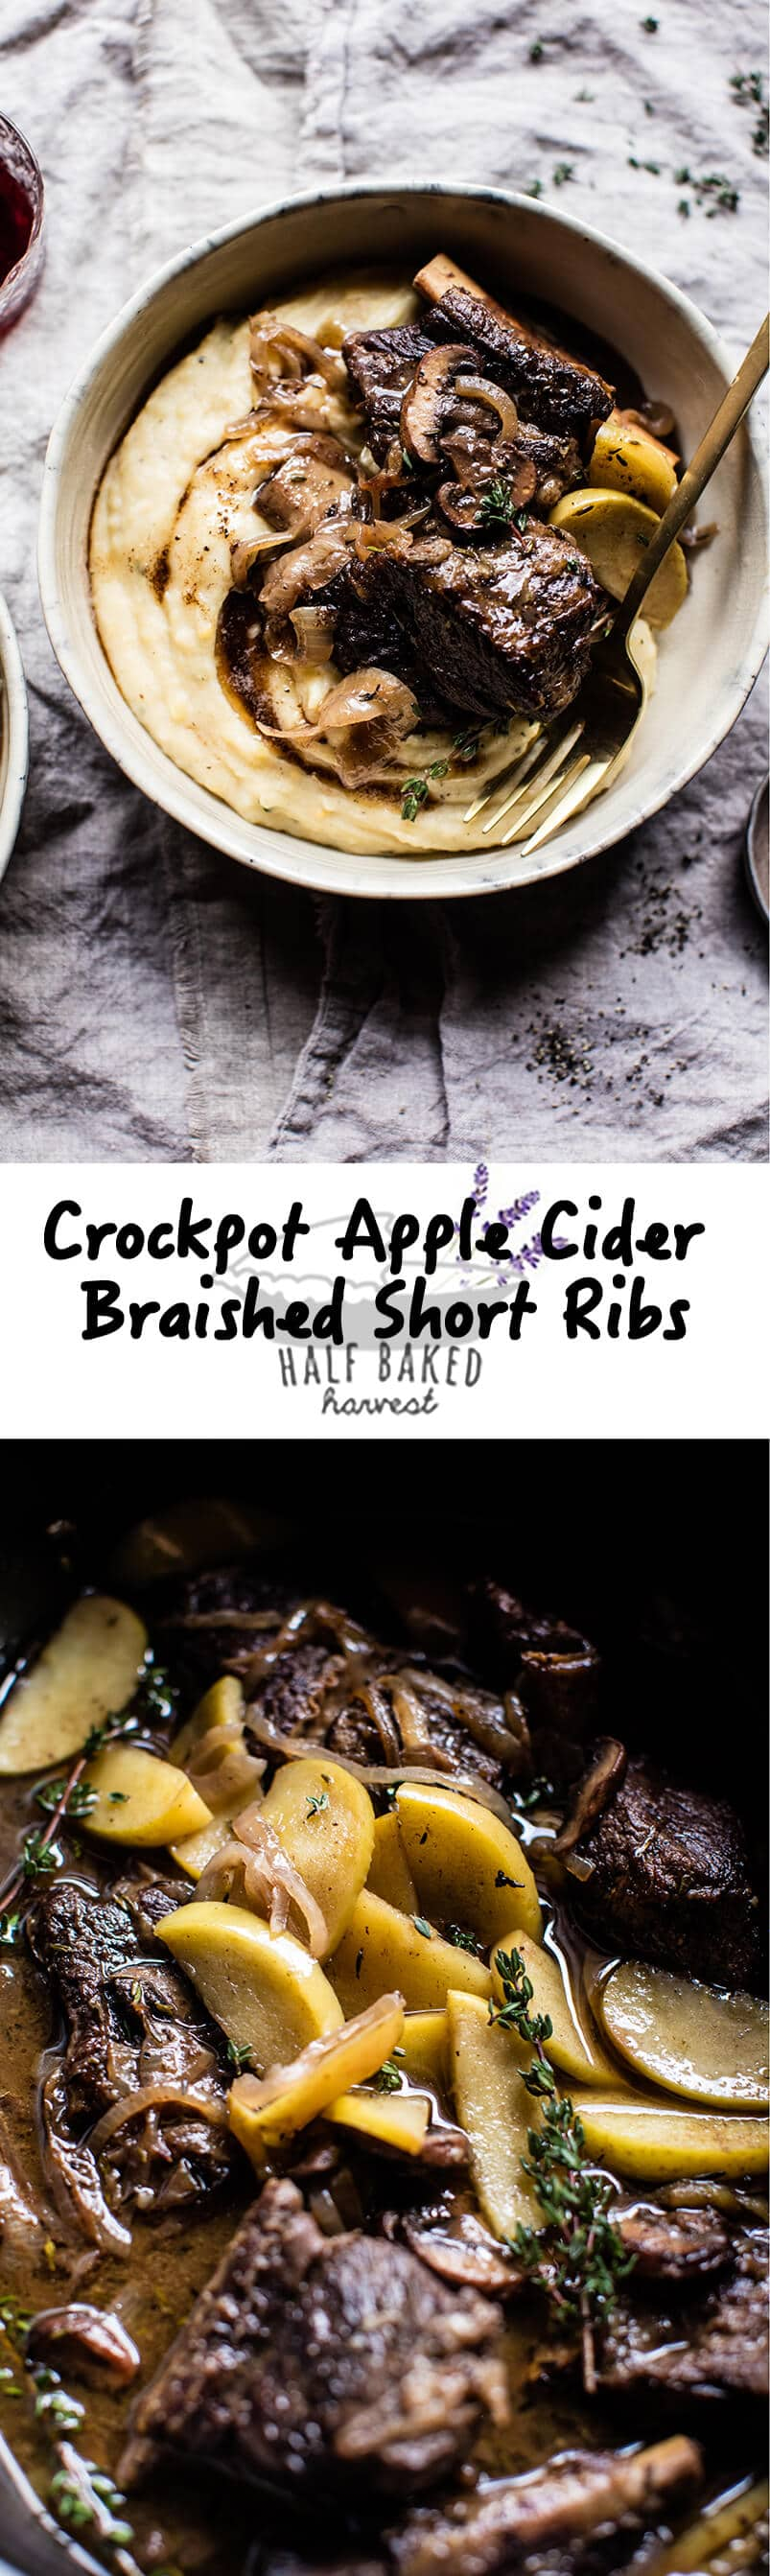 Crockpot Cider Braised Short Ribs with Sage Butter Mashed Potatoes | halfbakedharvest.com @hbharvest